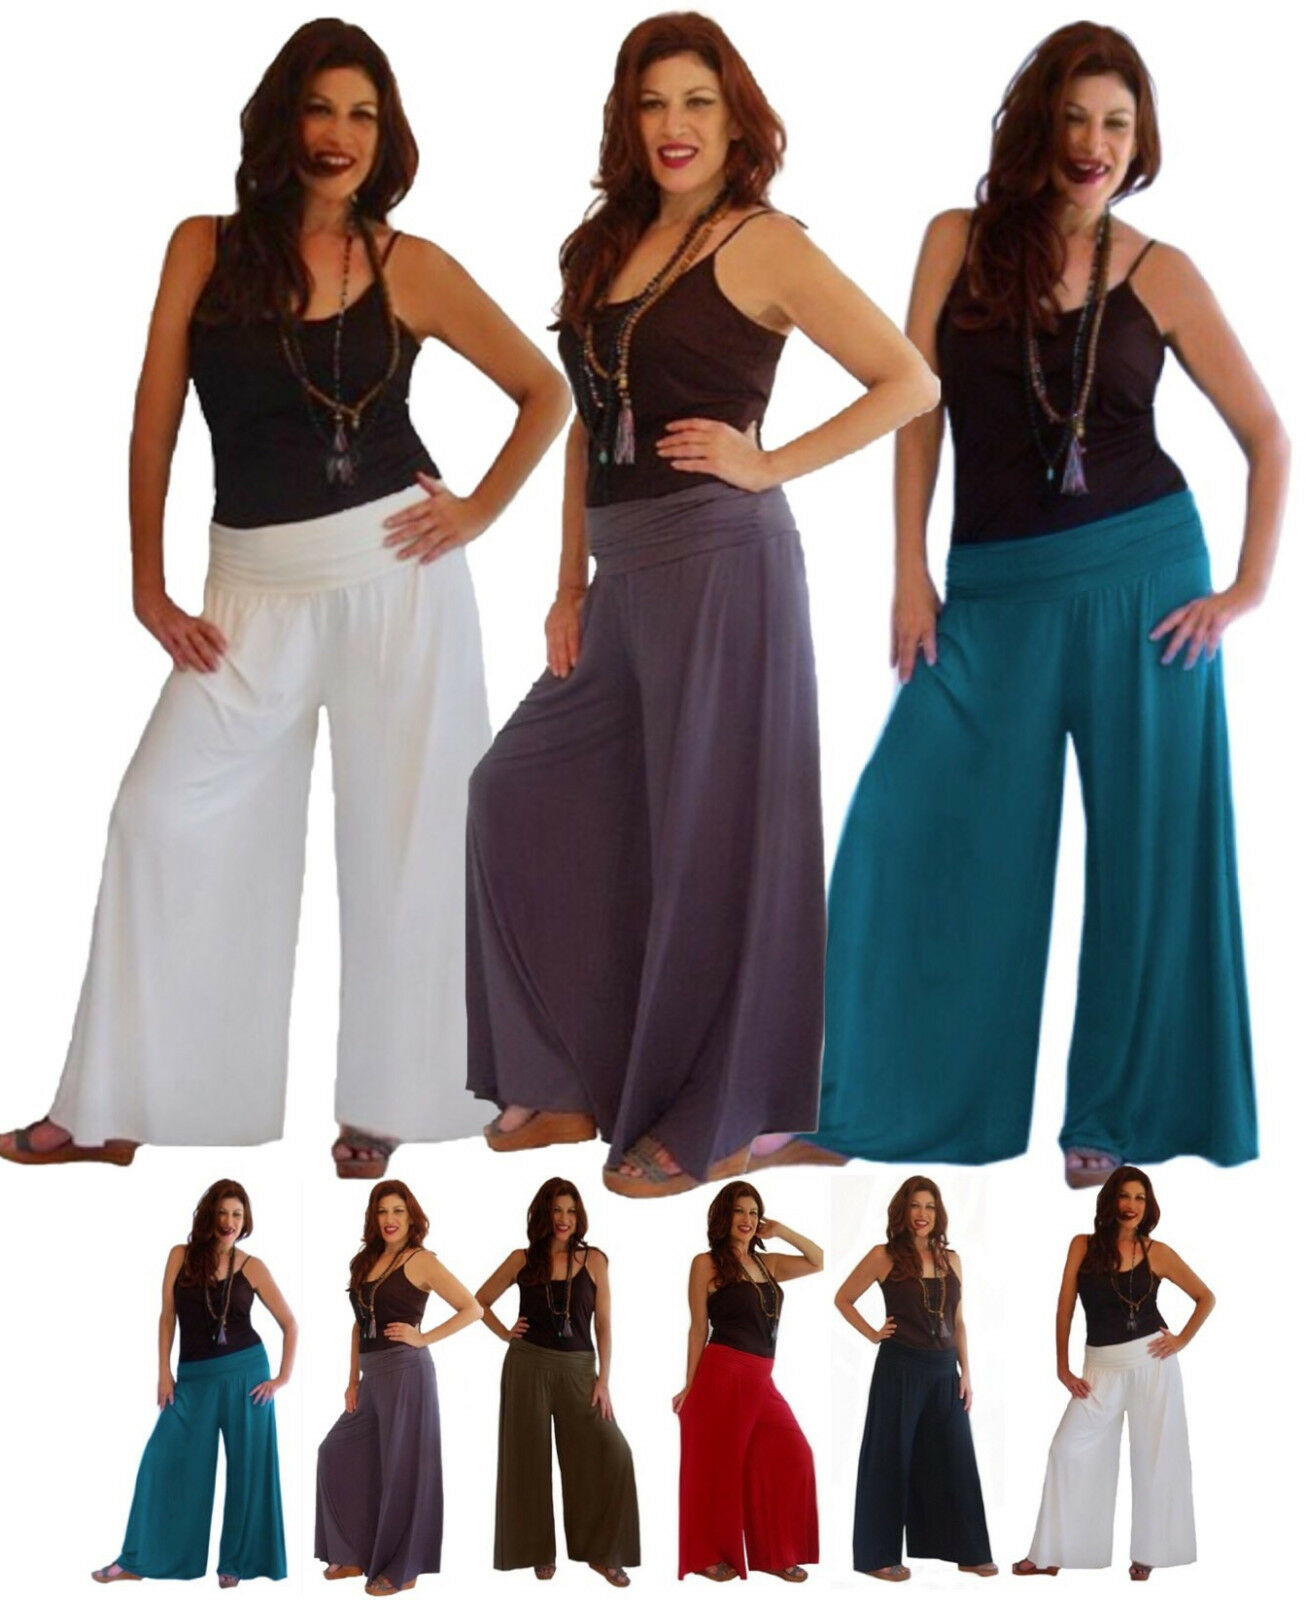 PANT GAUCHOS SPANDEX FASHION LotusTraders MADE TO ORDER PLUS CLOTHING I636